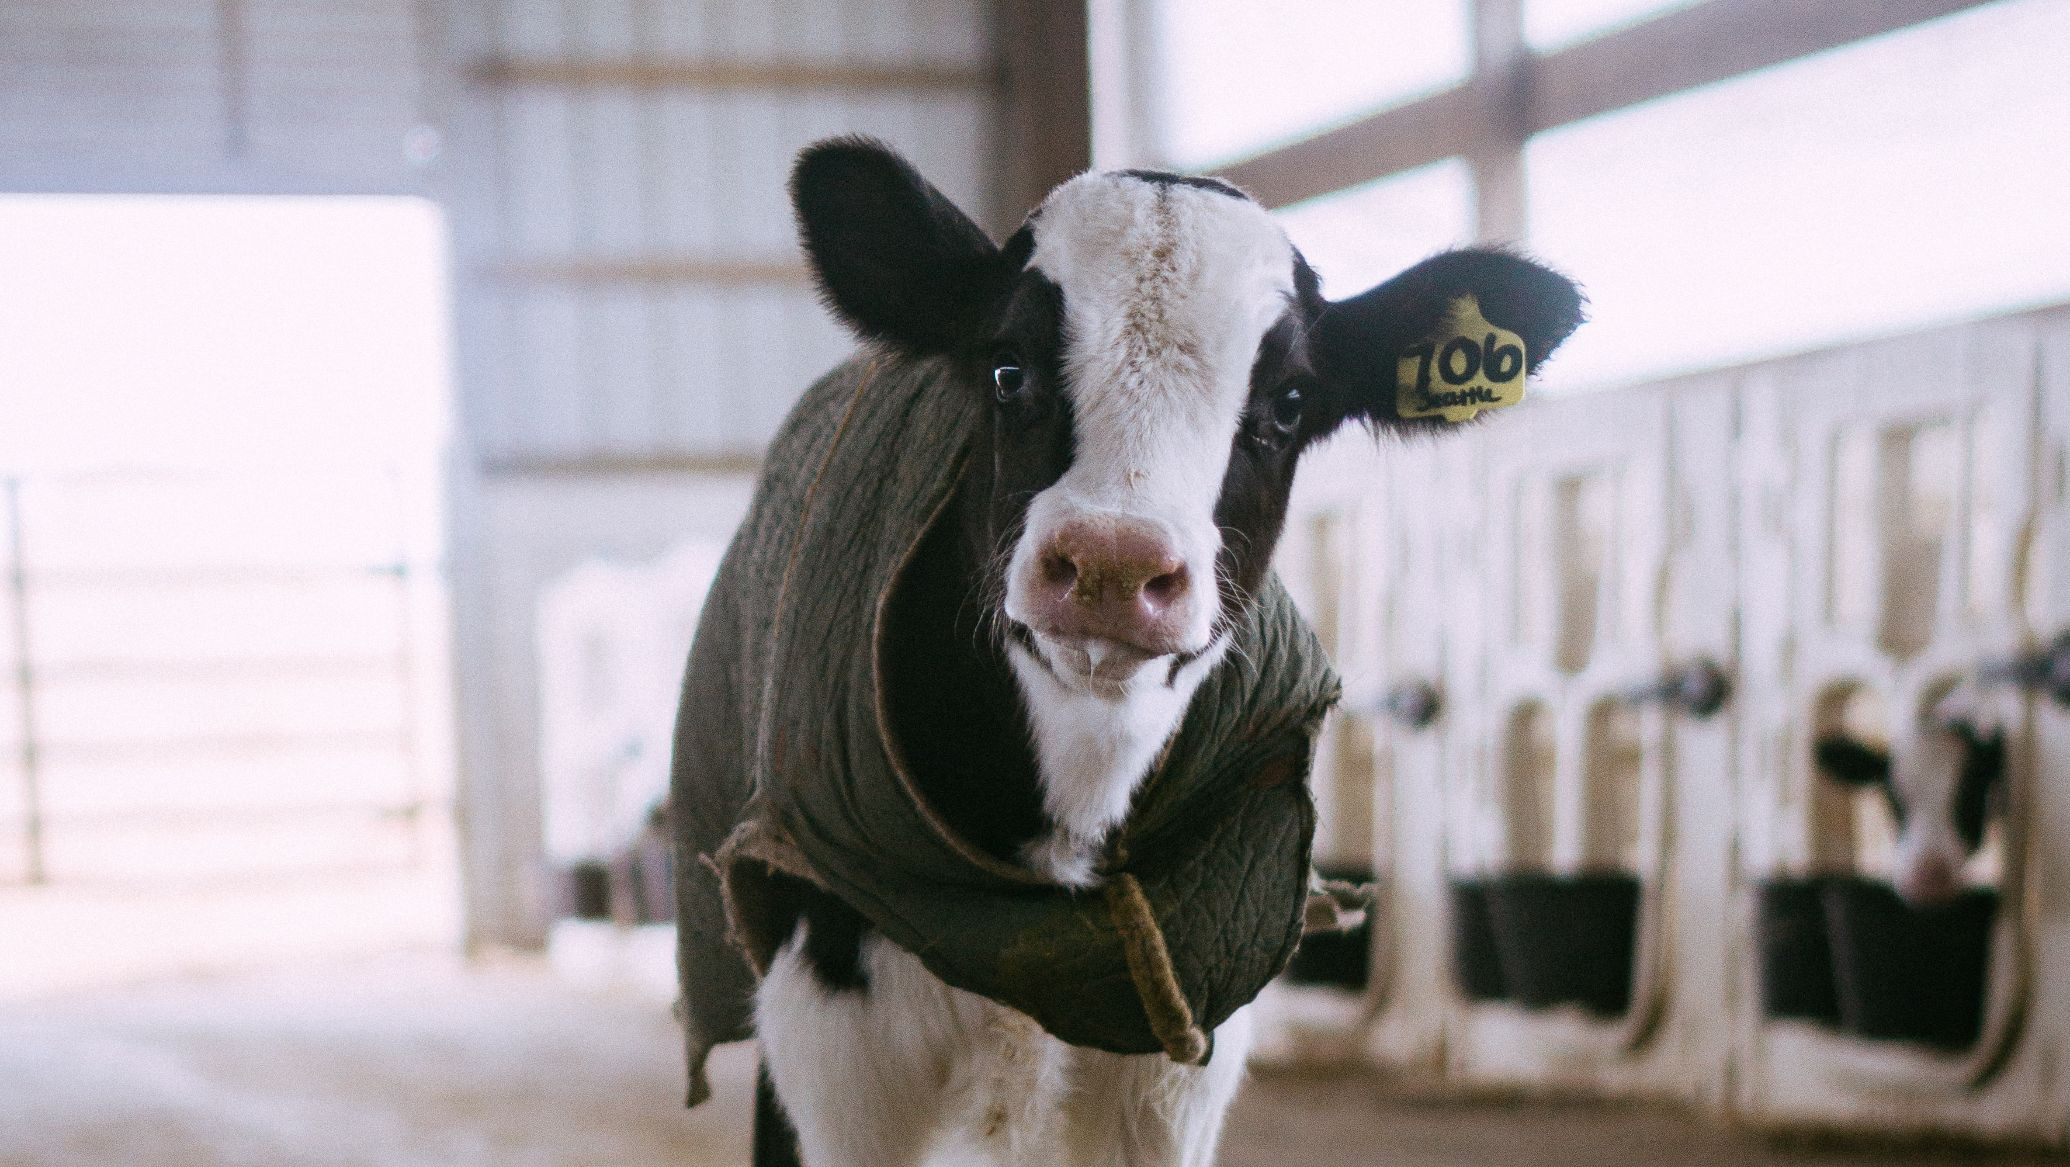 Baby Cow Photo By Amber Kipp Ethical Alternatives to Leather